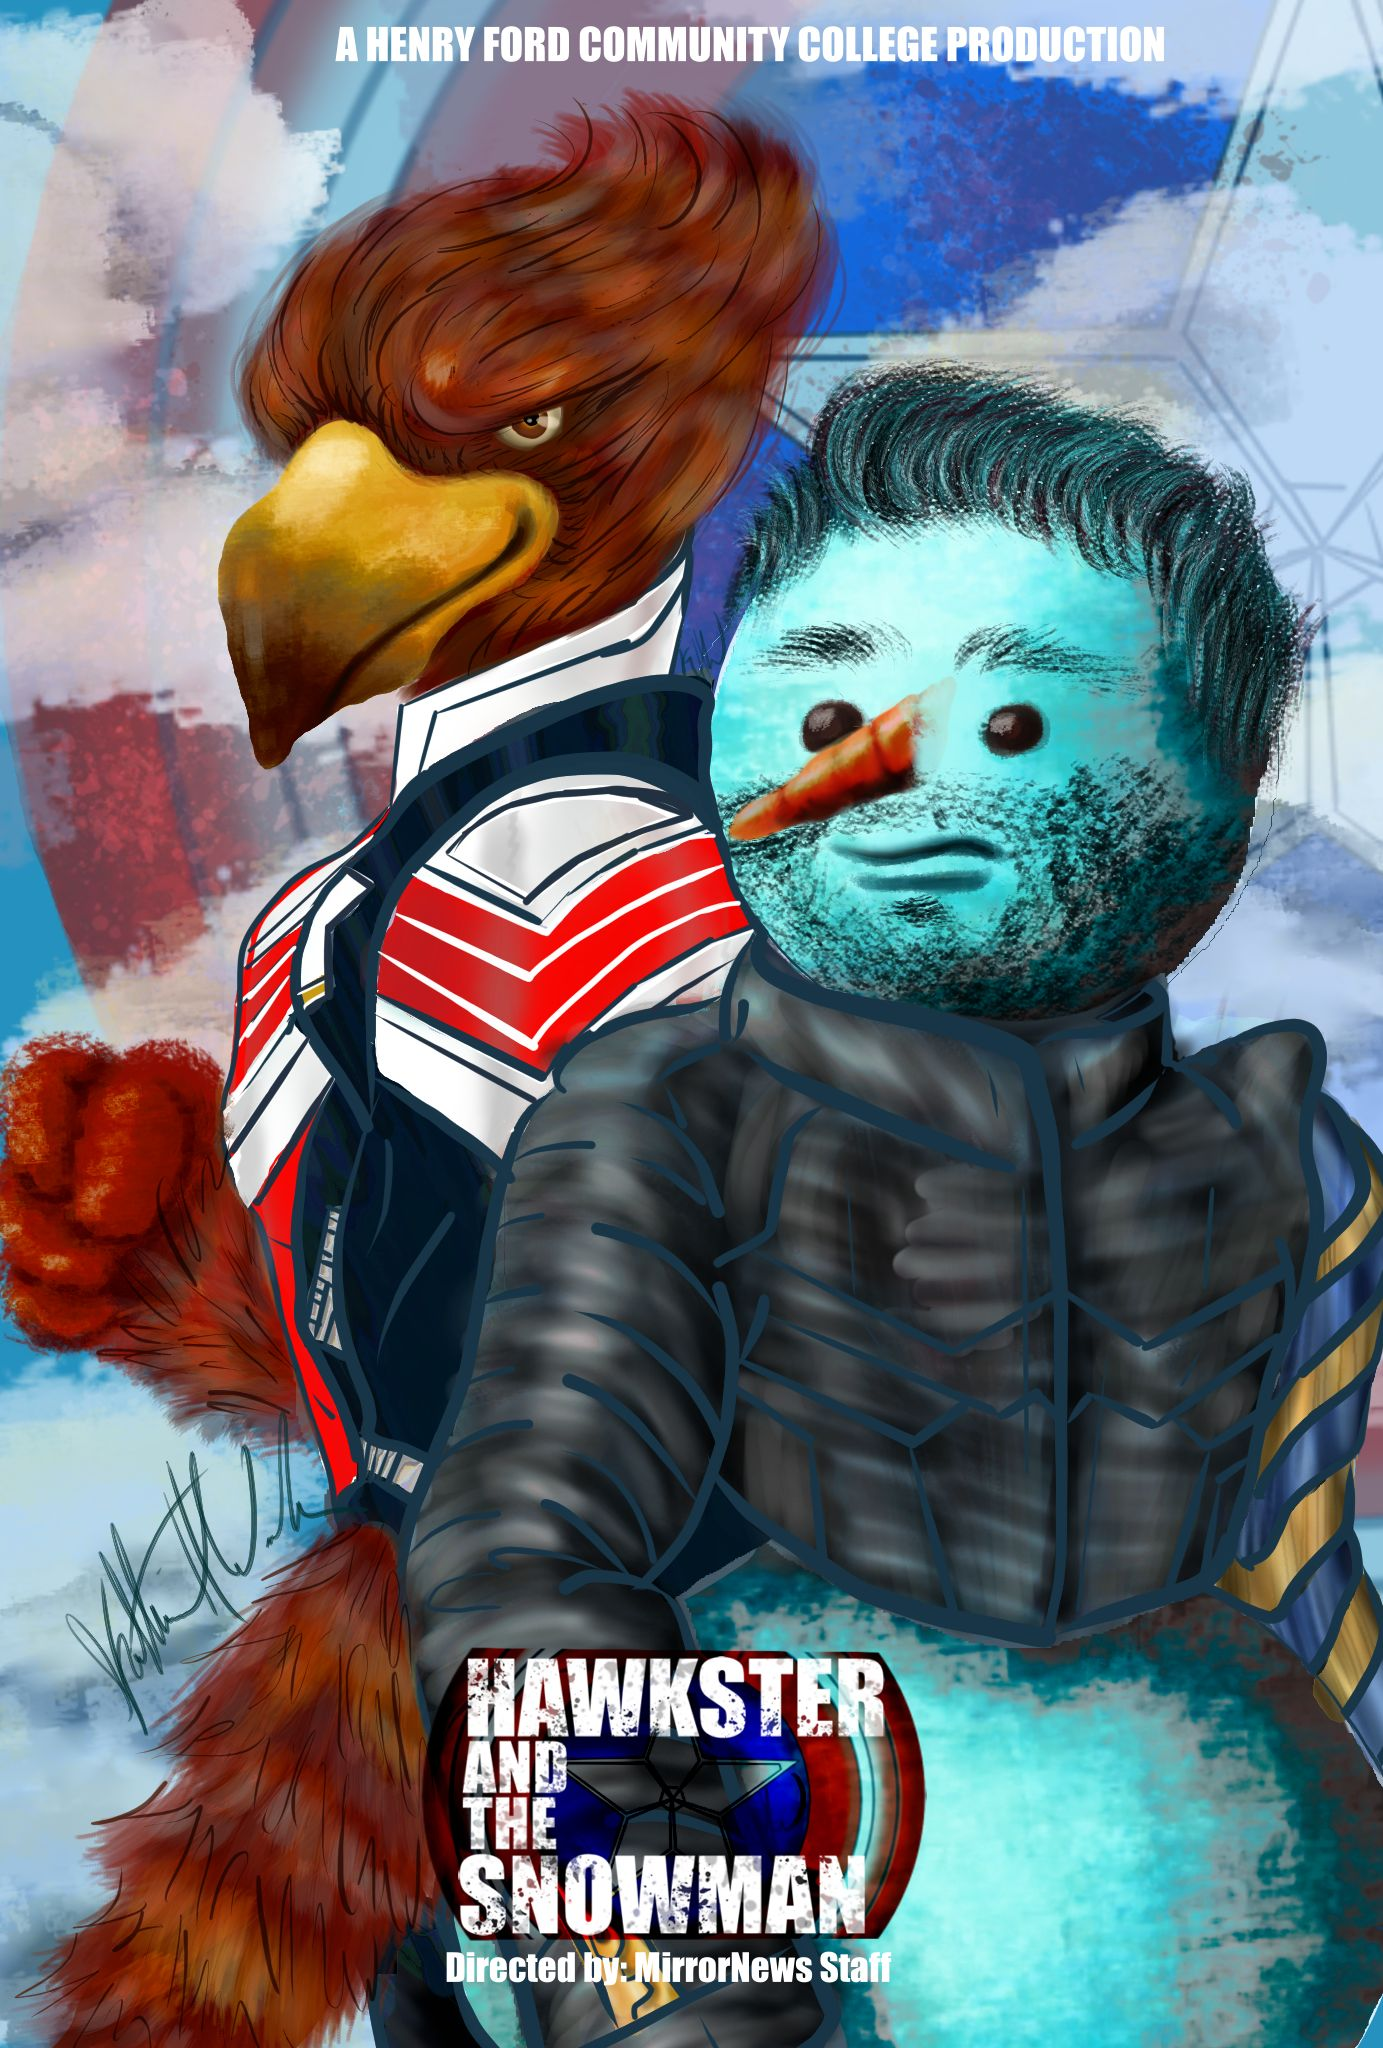 Spoof of Falcon and the Winter Soldier using Hawkster and the Snowman